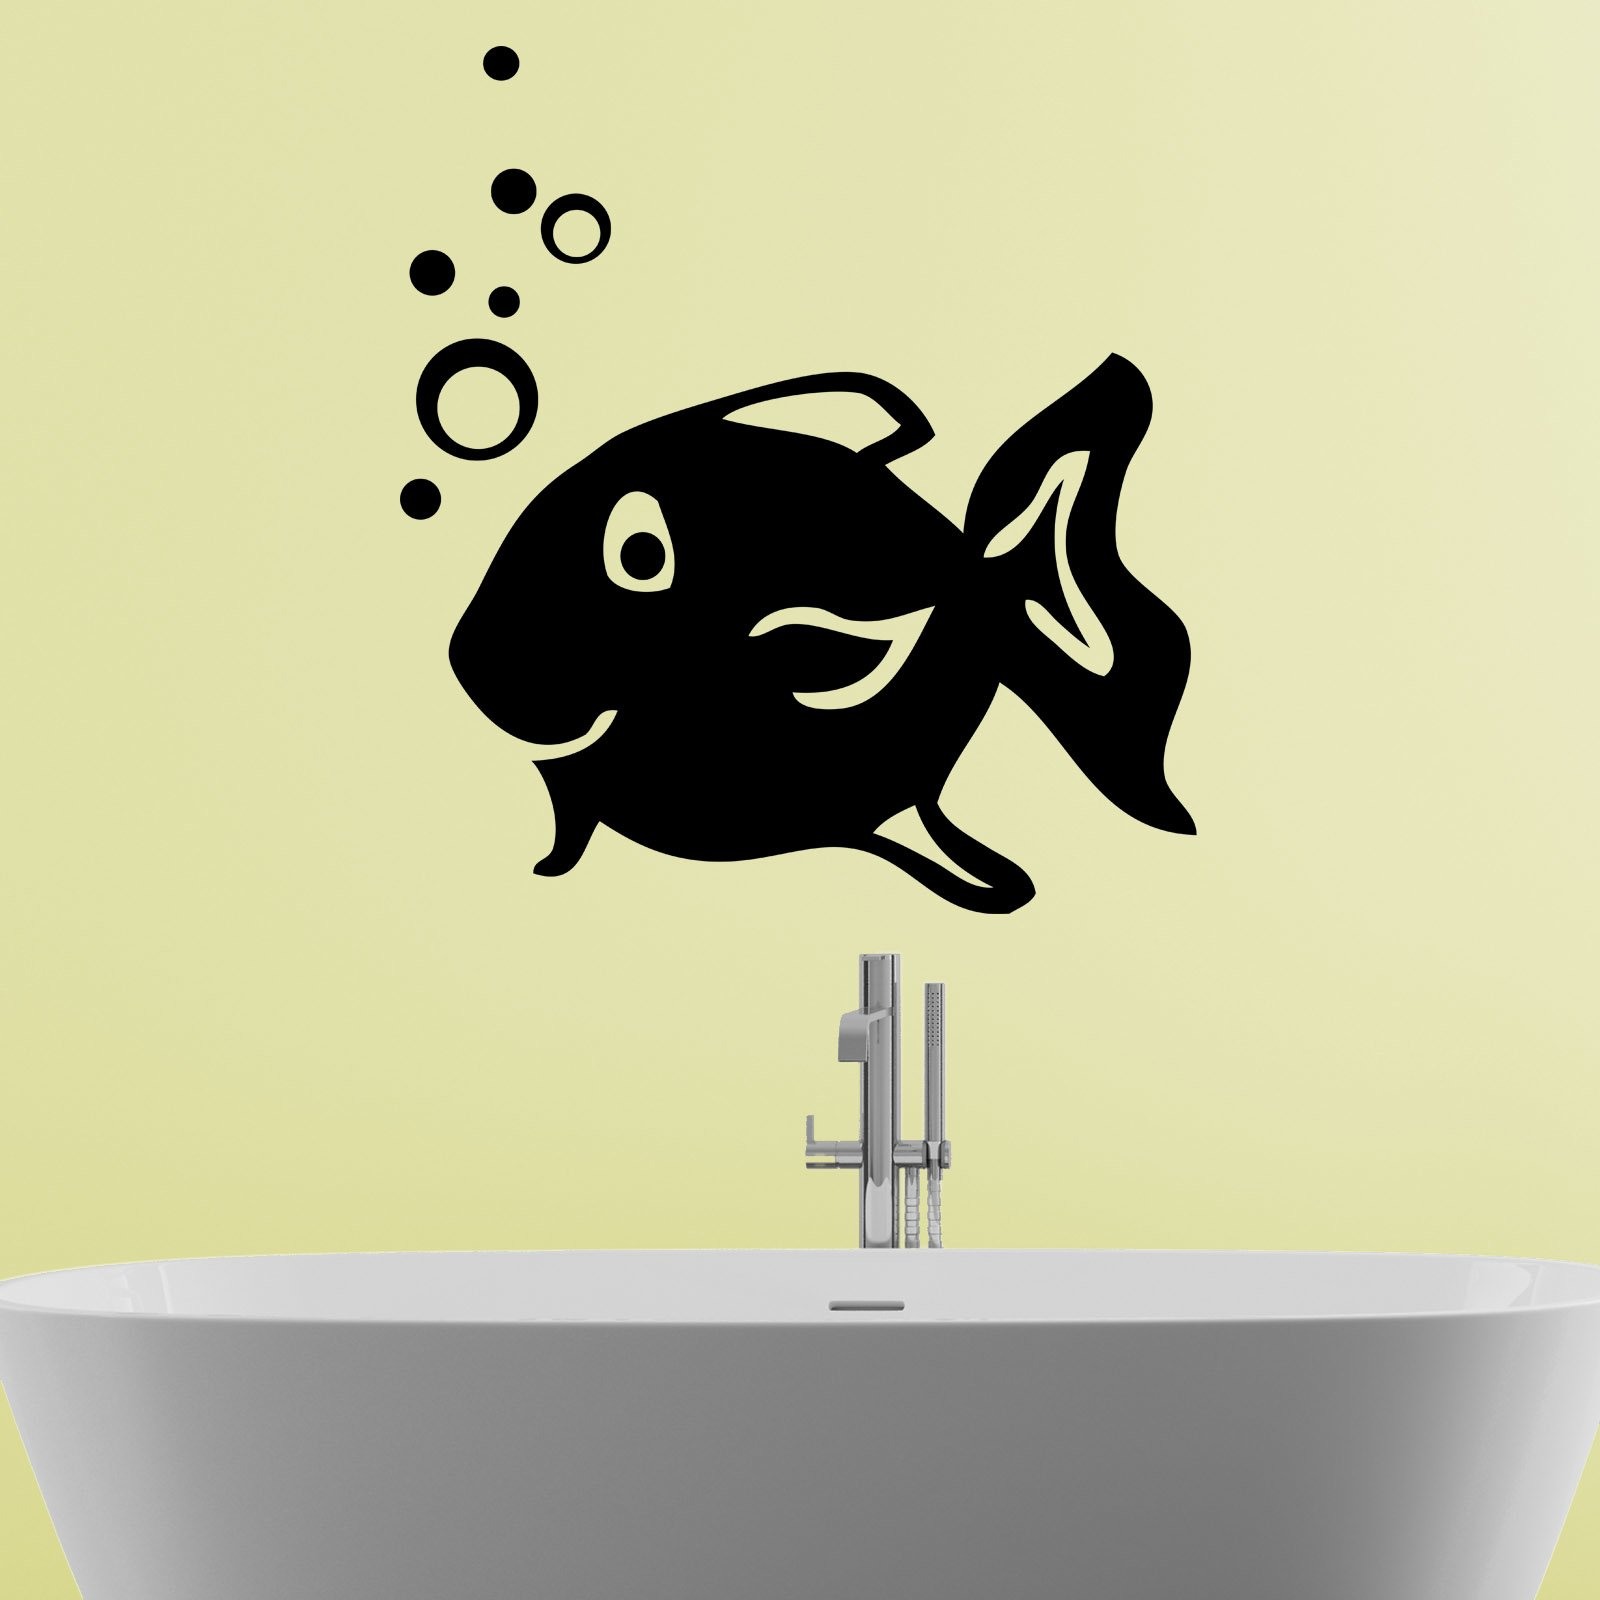 Happy Fish Blowing Bubbles Bathroom Wall Sticker - World of Wall ...